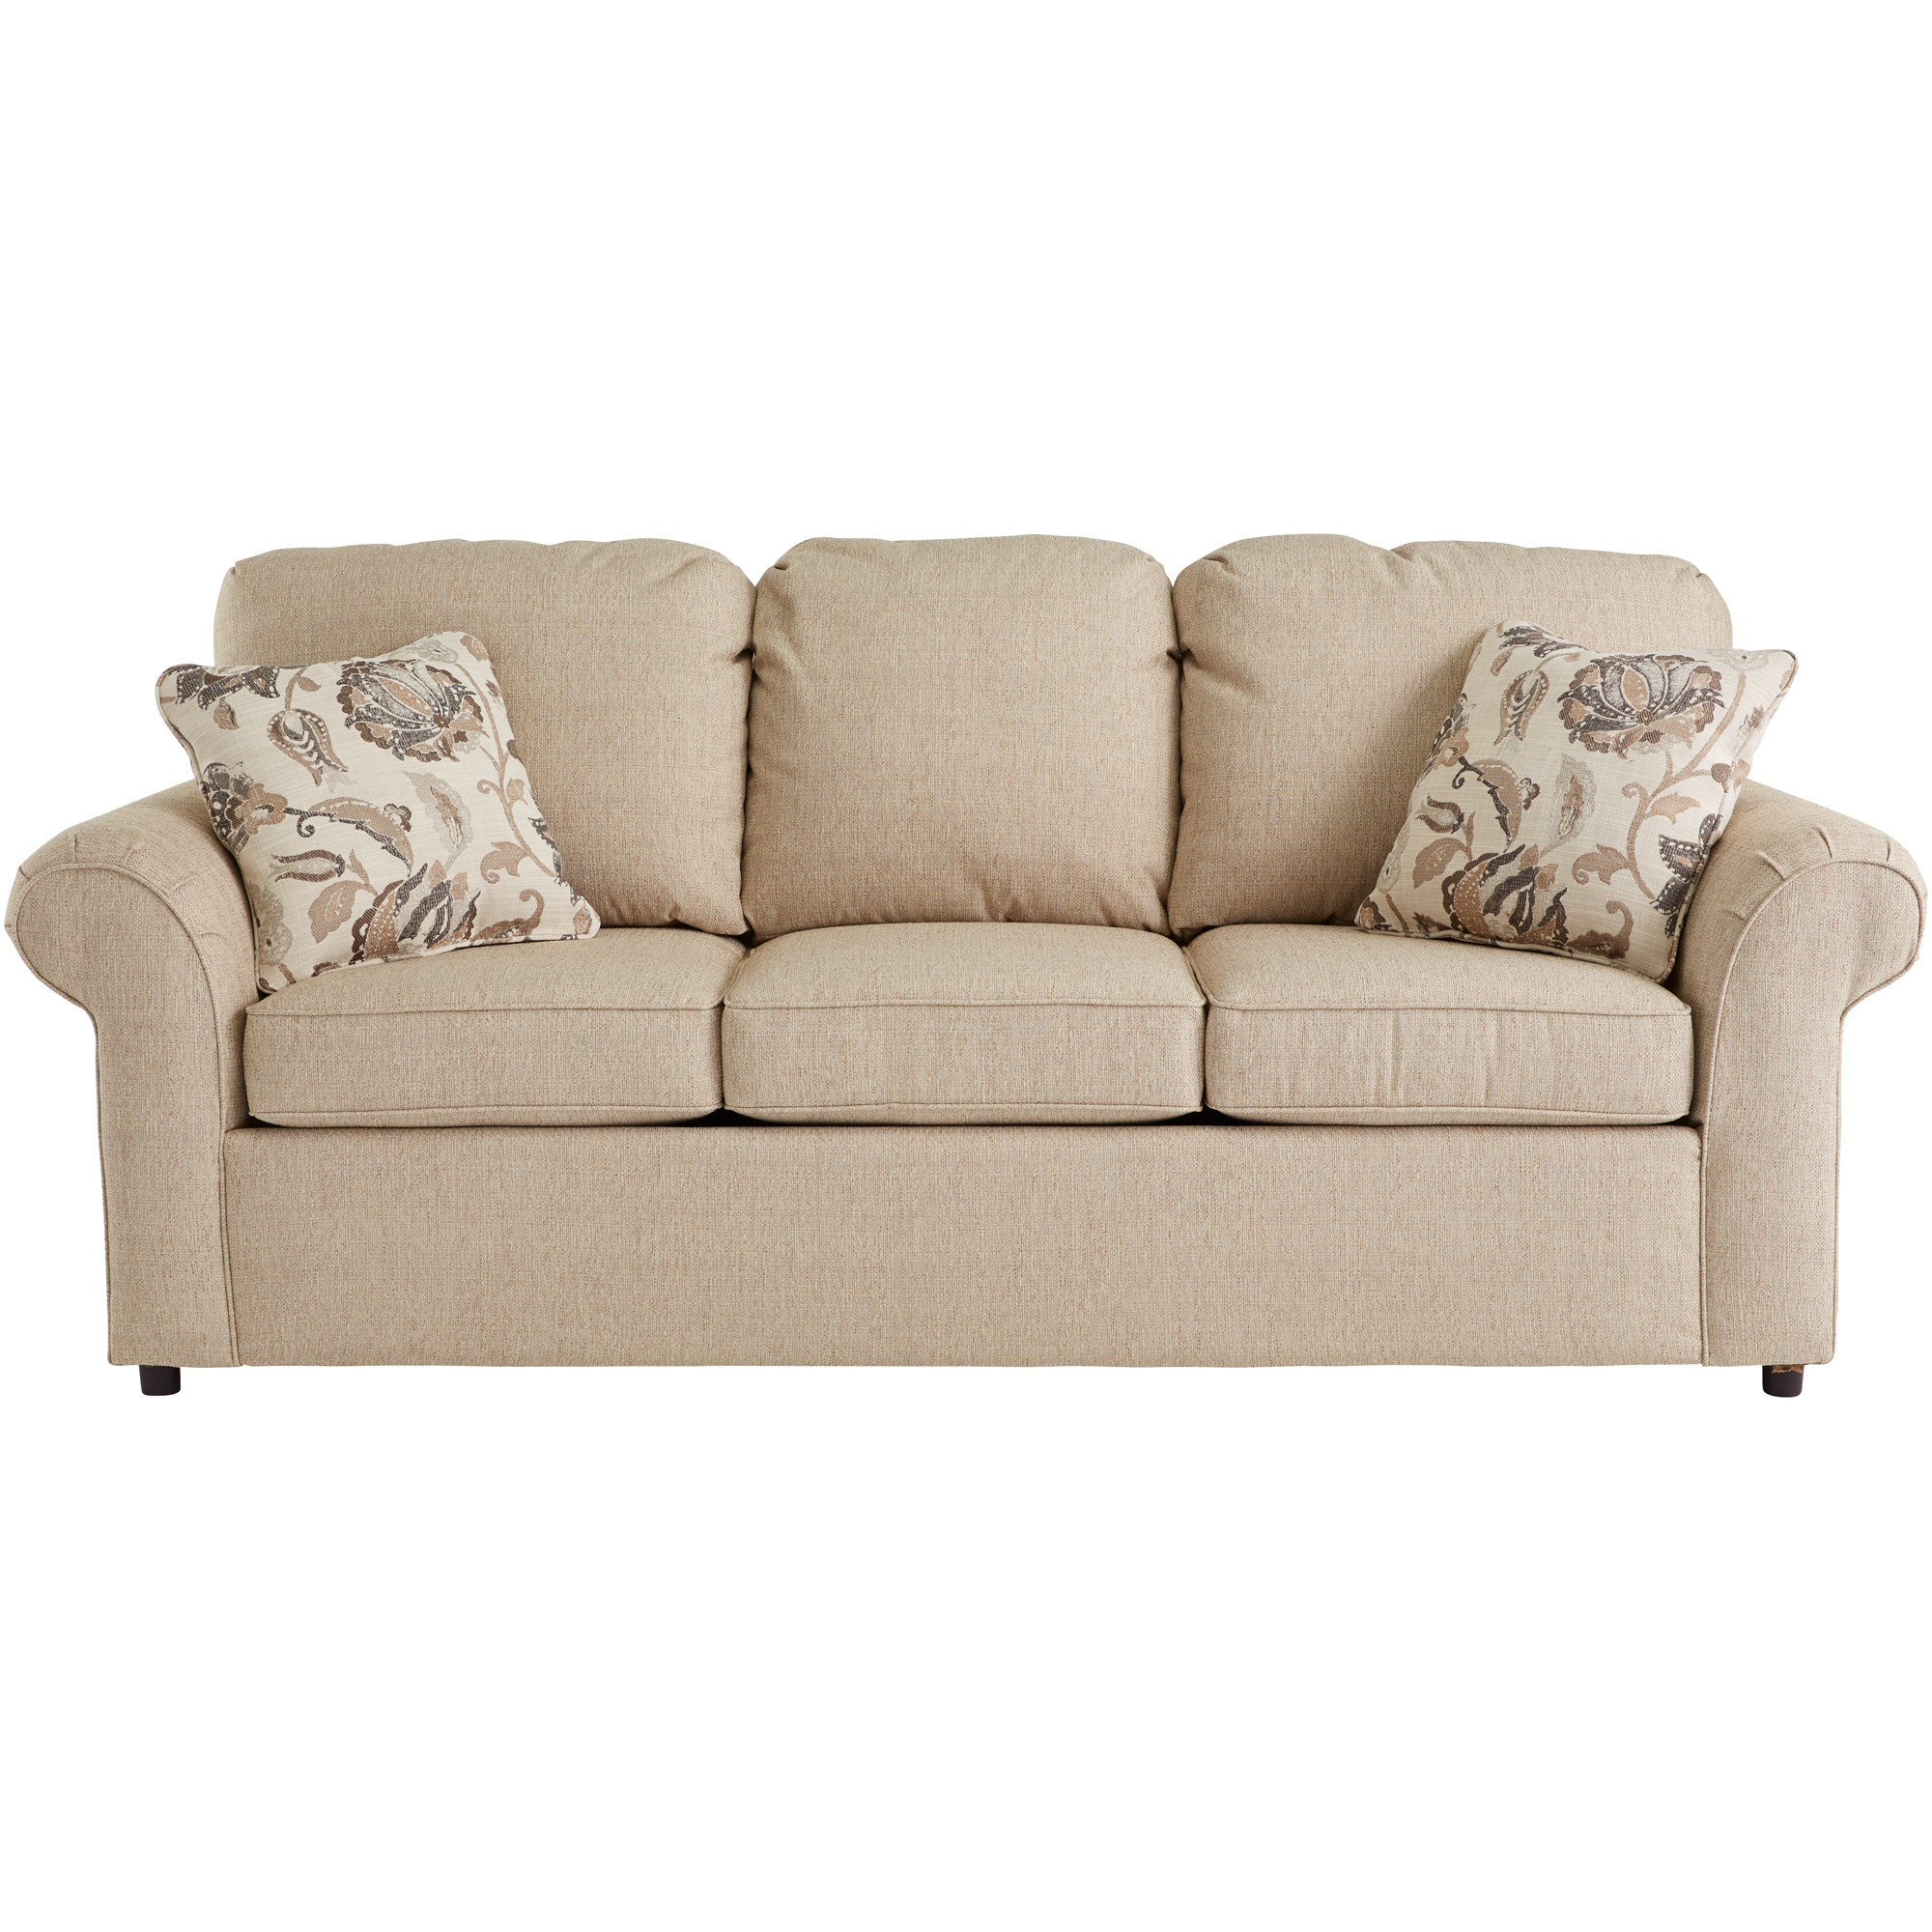 Dimensions By England   Burke Bisque Queen Visco Sleeper Sofa